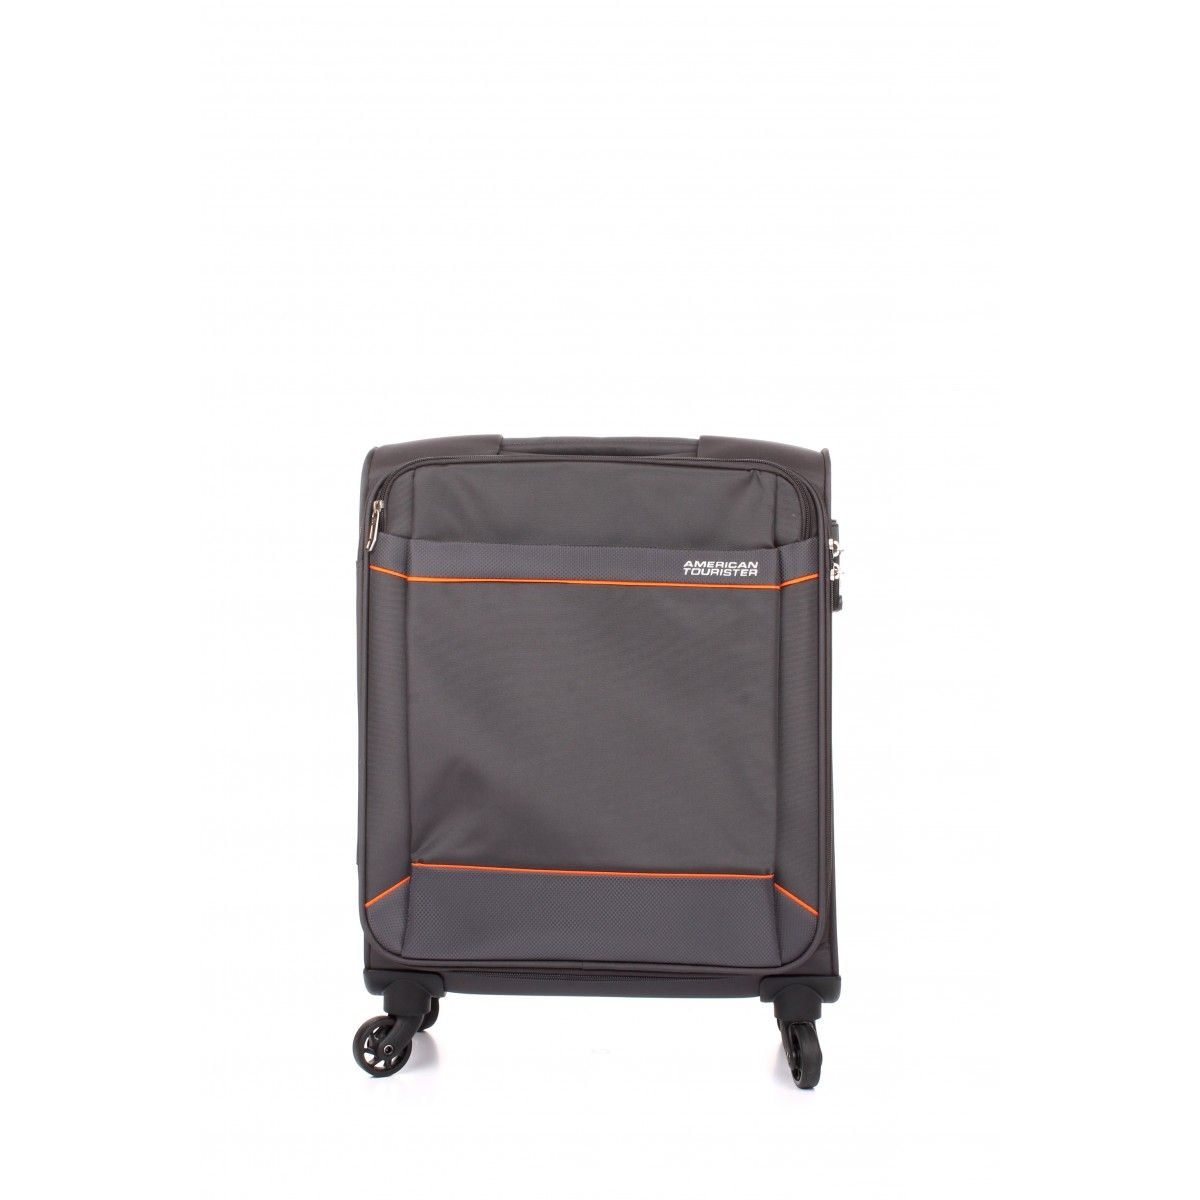 American tourister by samsonite - At pearl river spin 55/20 *008 stone grey 10G.902